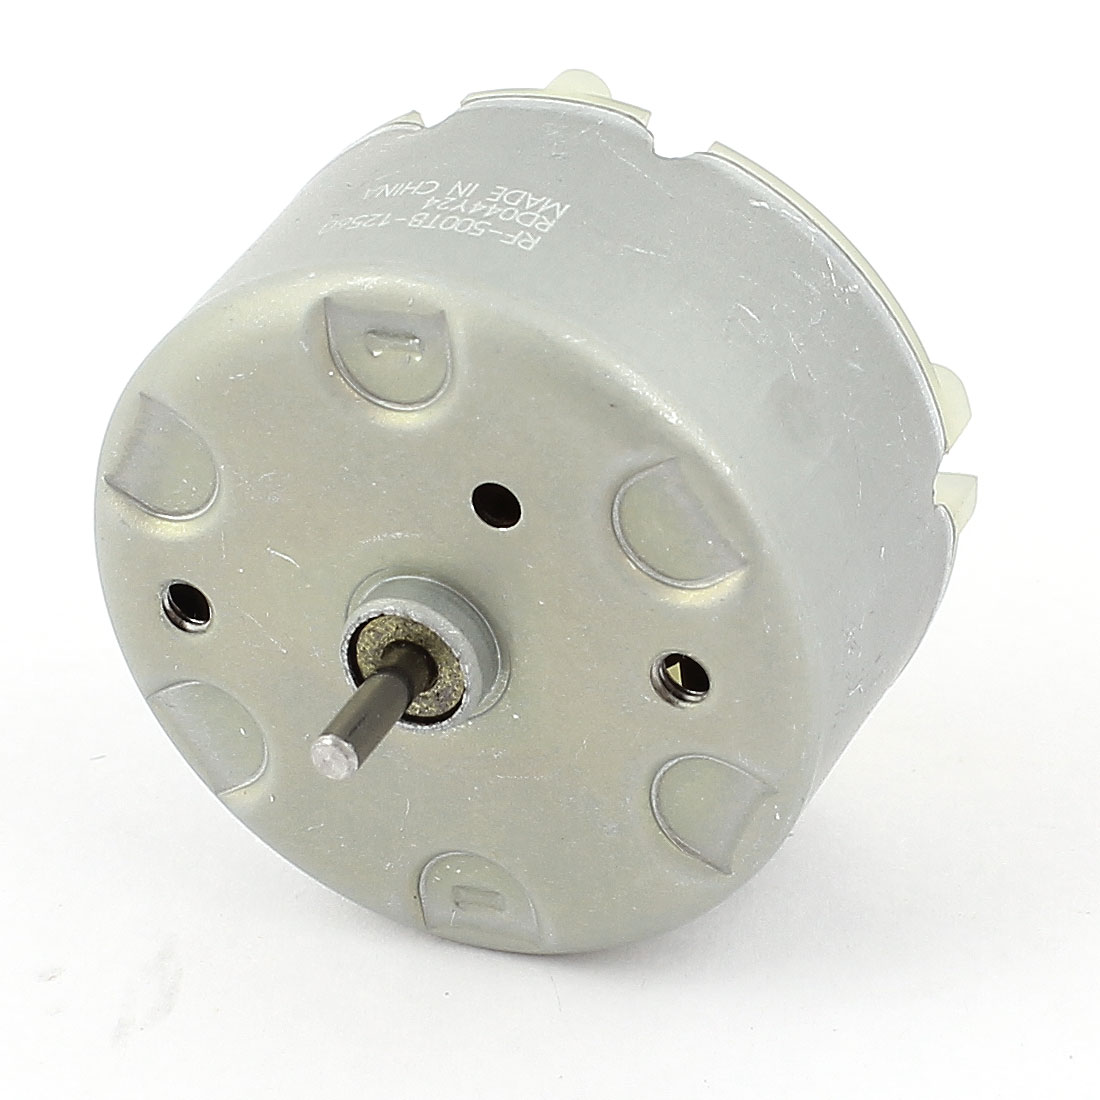 Unique Bargains DC 12V 5500RPM Rotary  Electric Motor for Alarm Bell Blender Machine